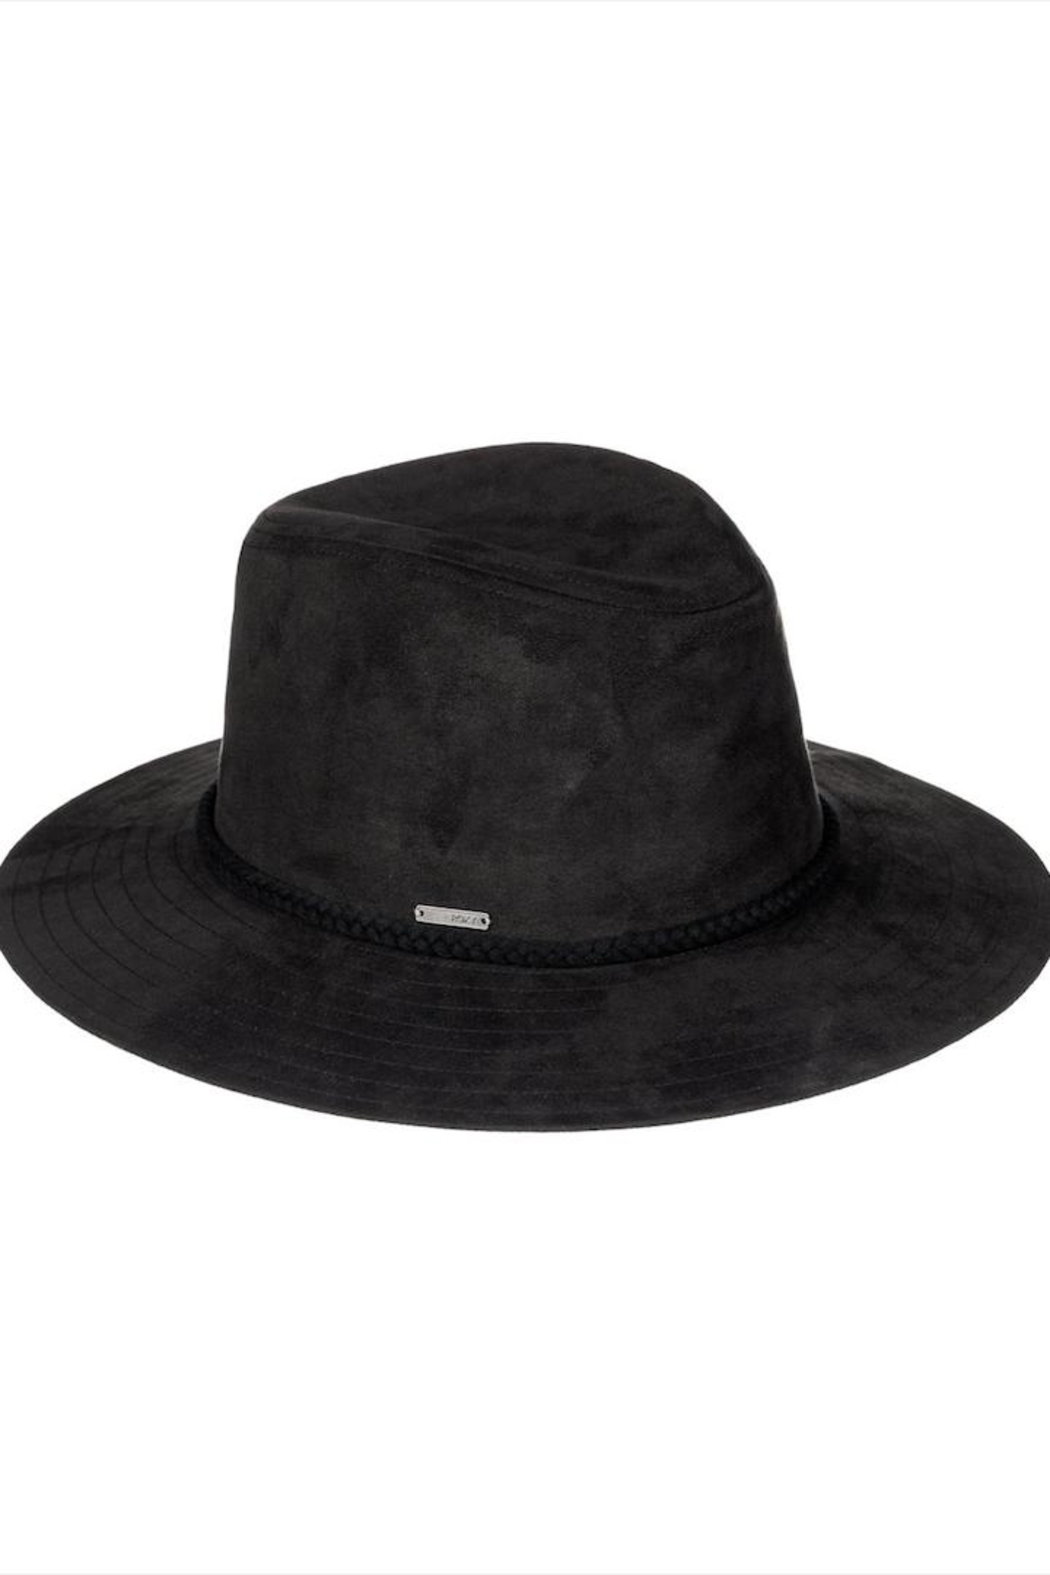 Roxy Black Faux-Leather Hat - Main Image